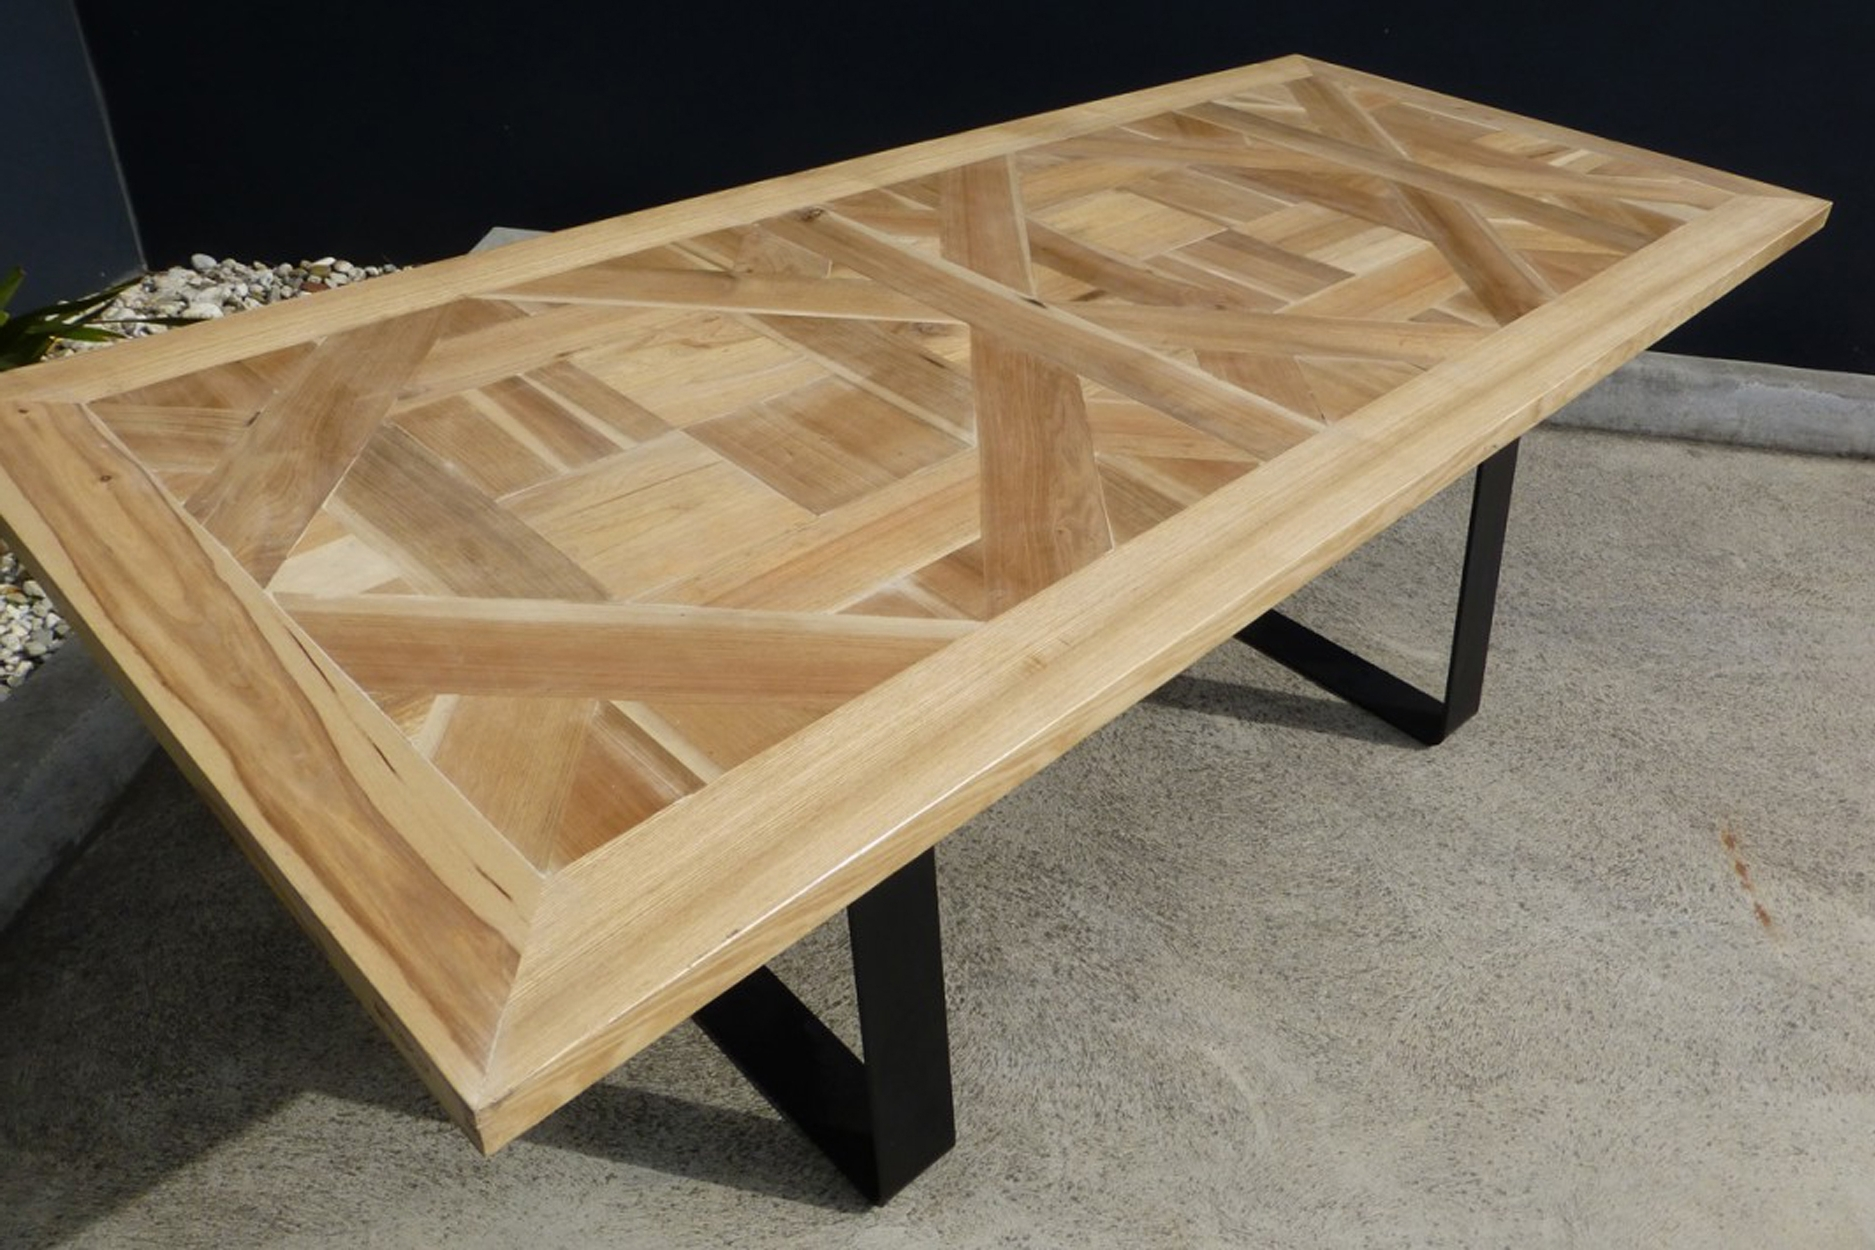 Finest Parquet Dining Table &th93 – Roccommunity Within Well Known Parquet Dining Tables (View 22 of 25)